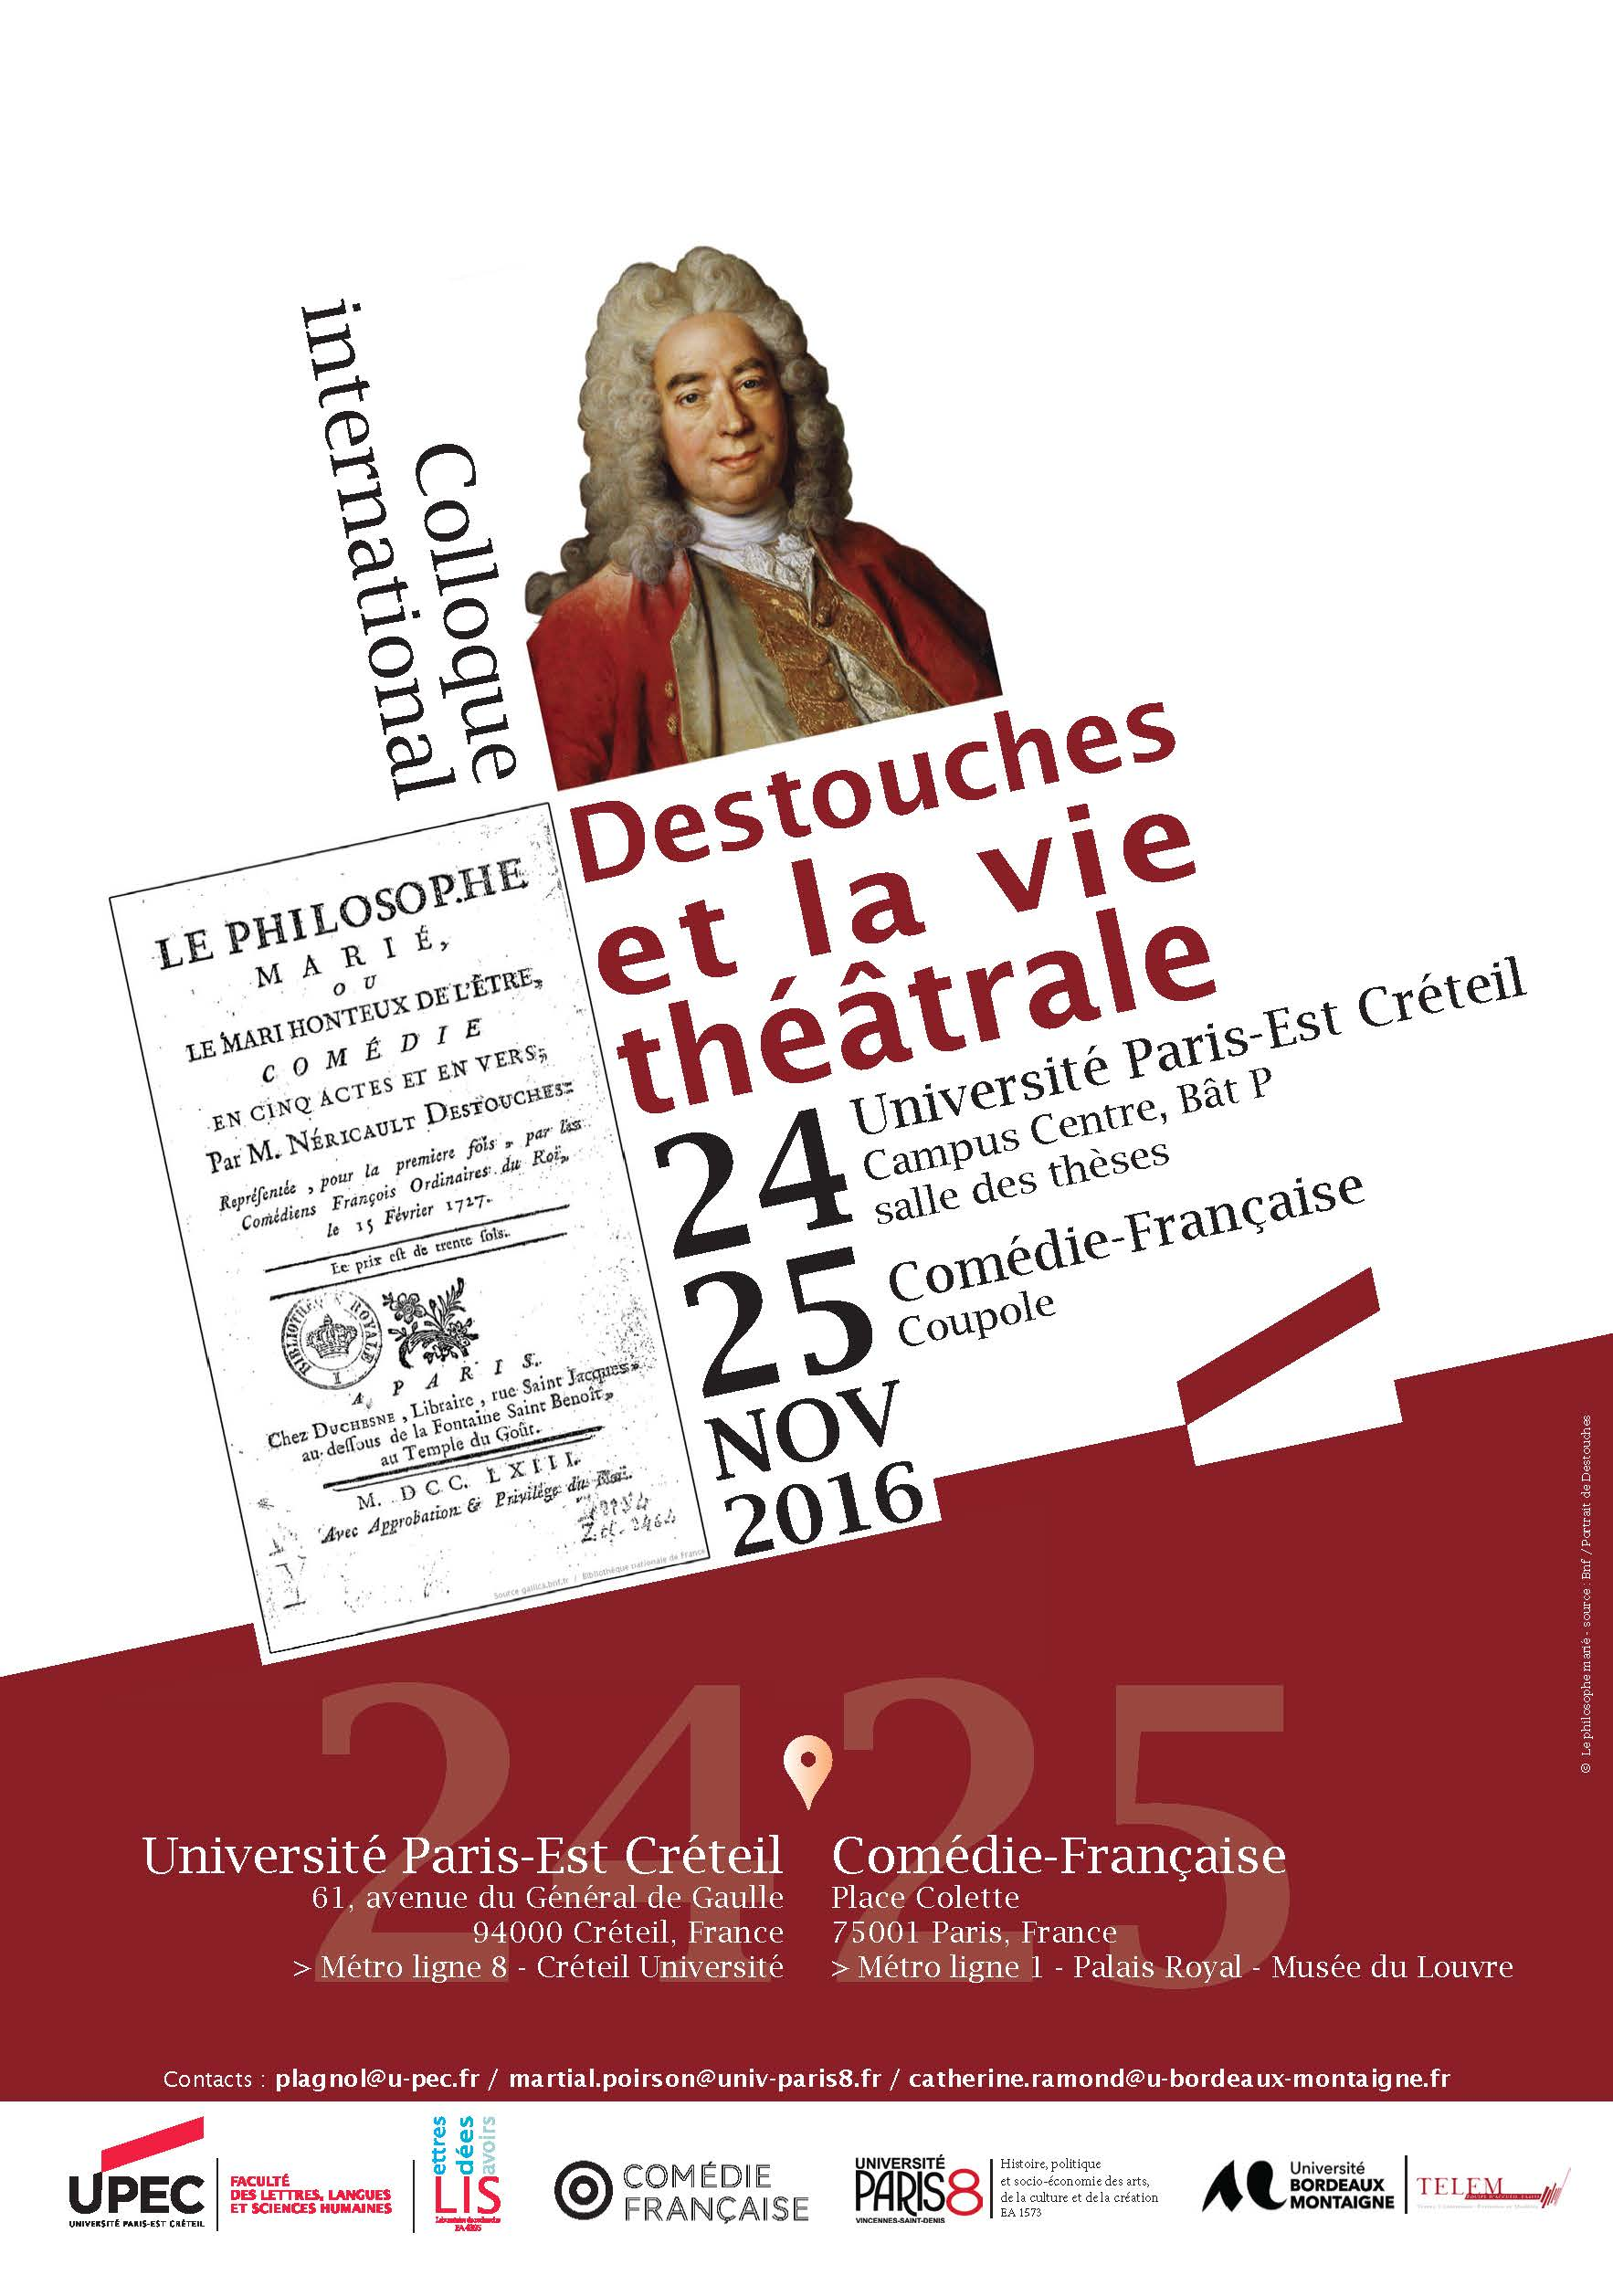 Affiche colloque Destouches